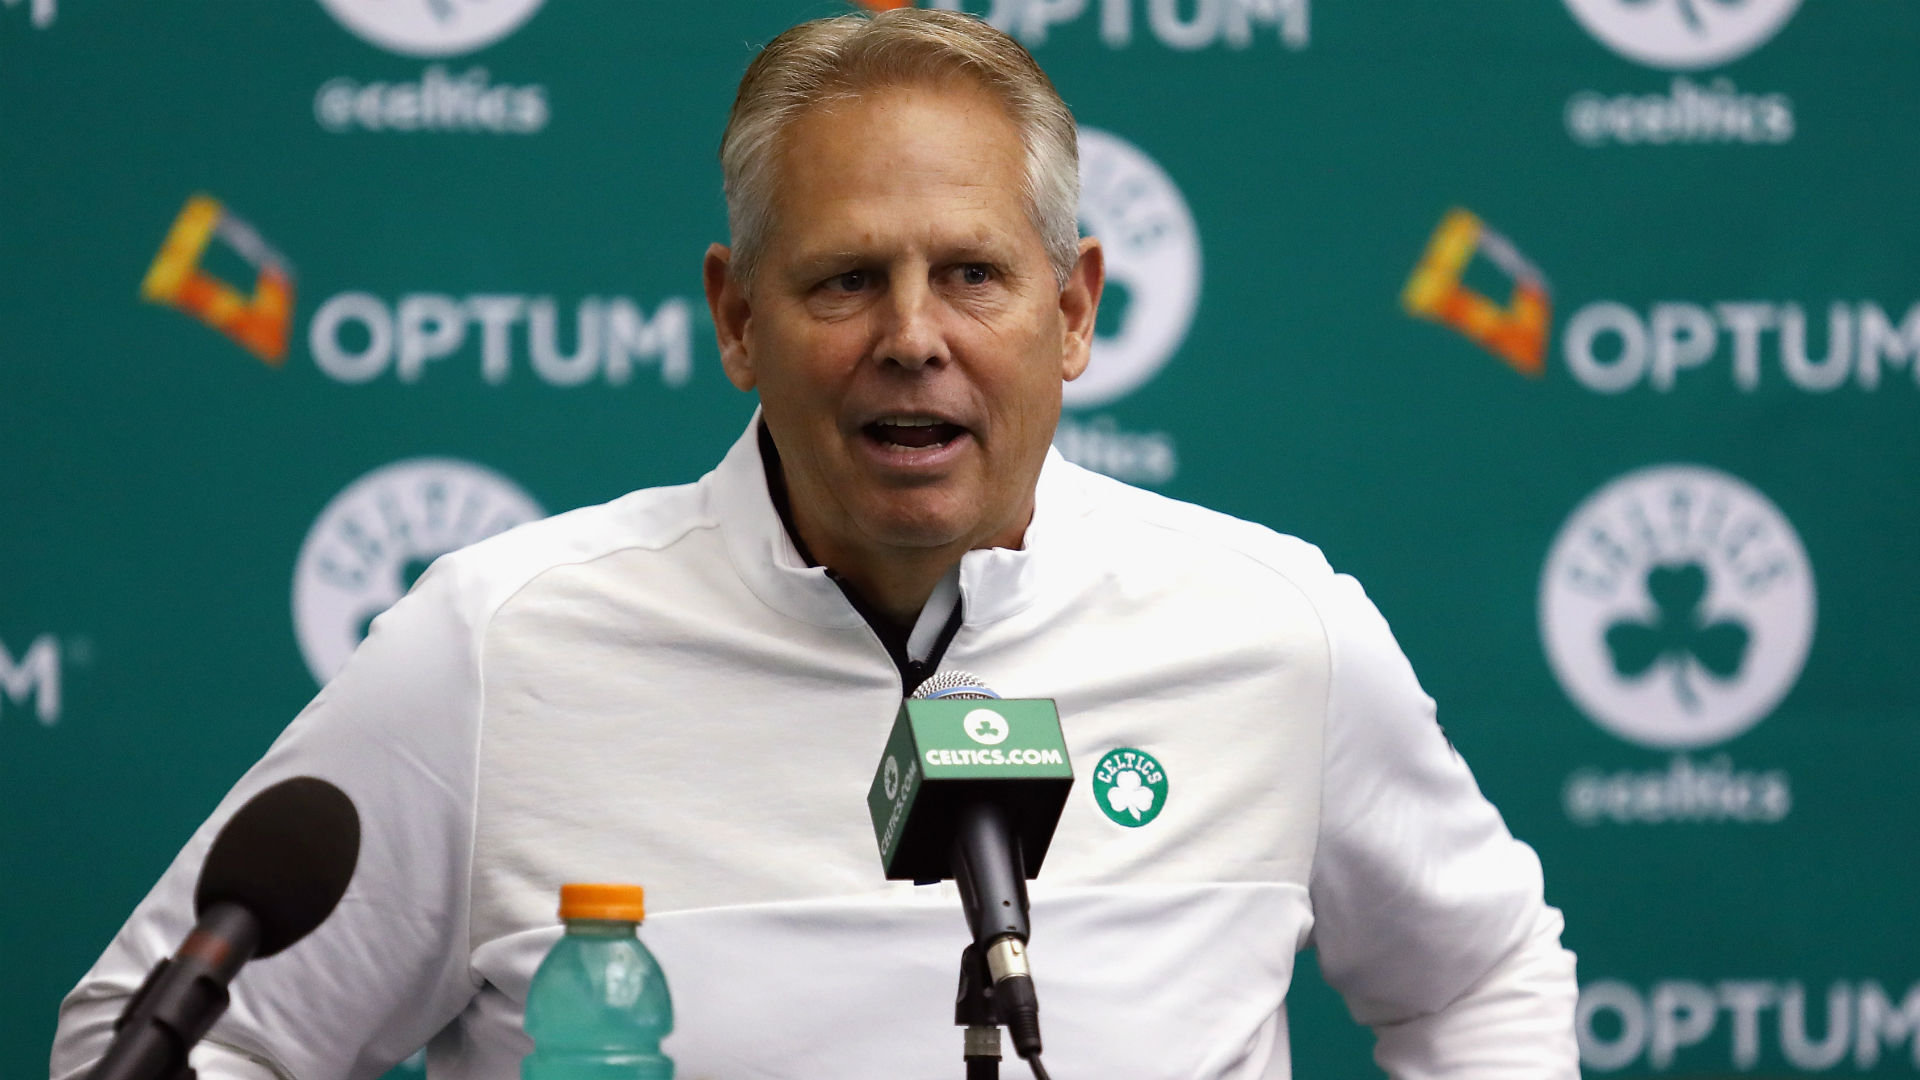 NBA Draft rumors: Celtics interested in trading up to No. 4